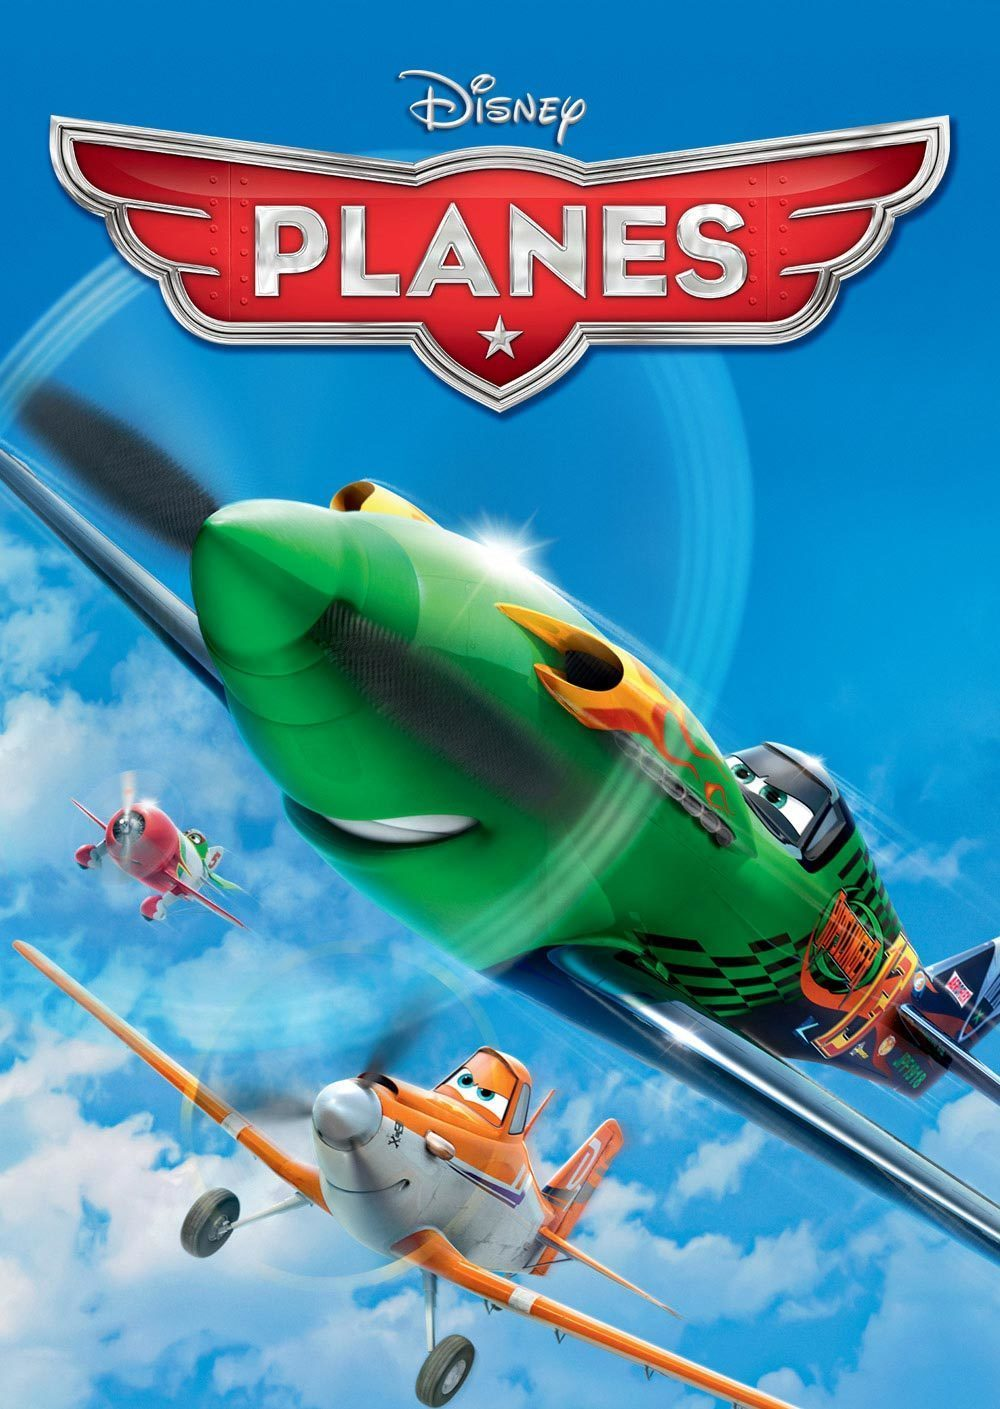 Disney Planes Video Game